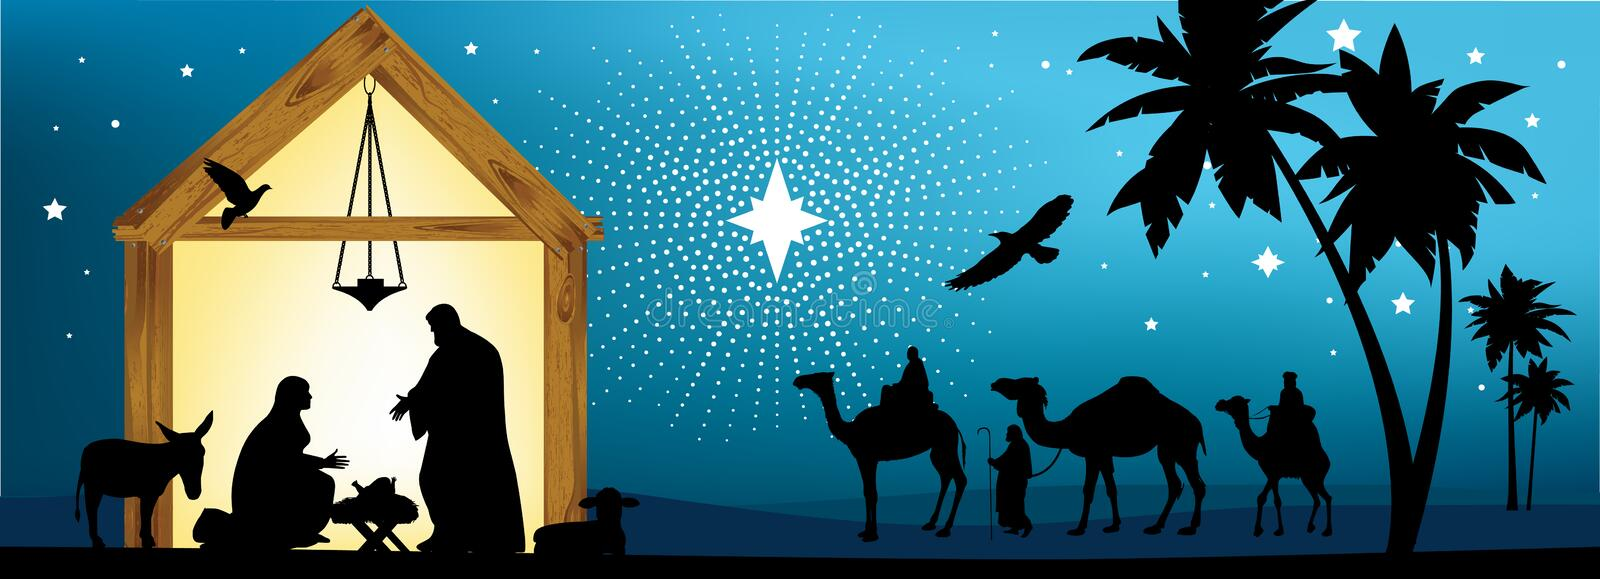 Star of Bethlehem. All elements and textures are individual objects. Vector illustration scale to any size